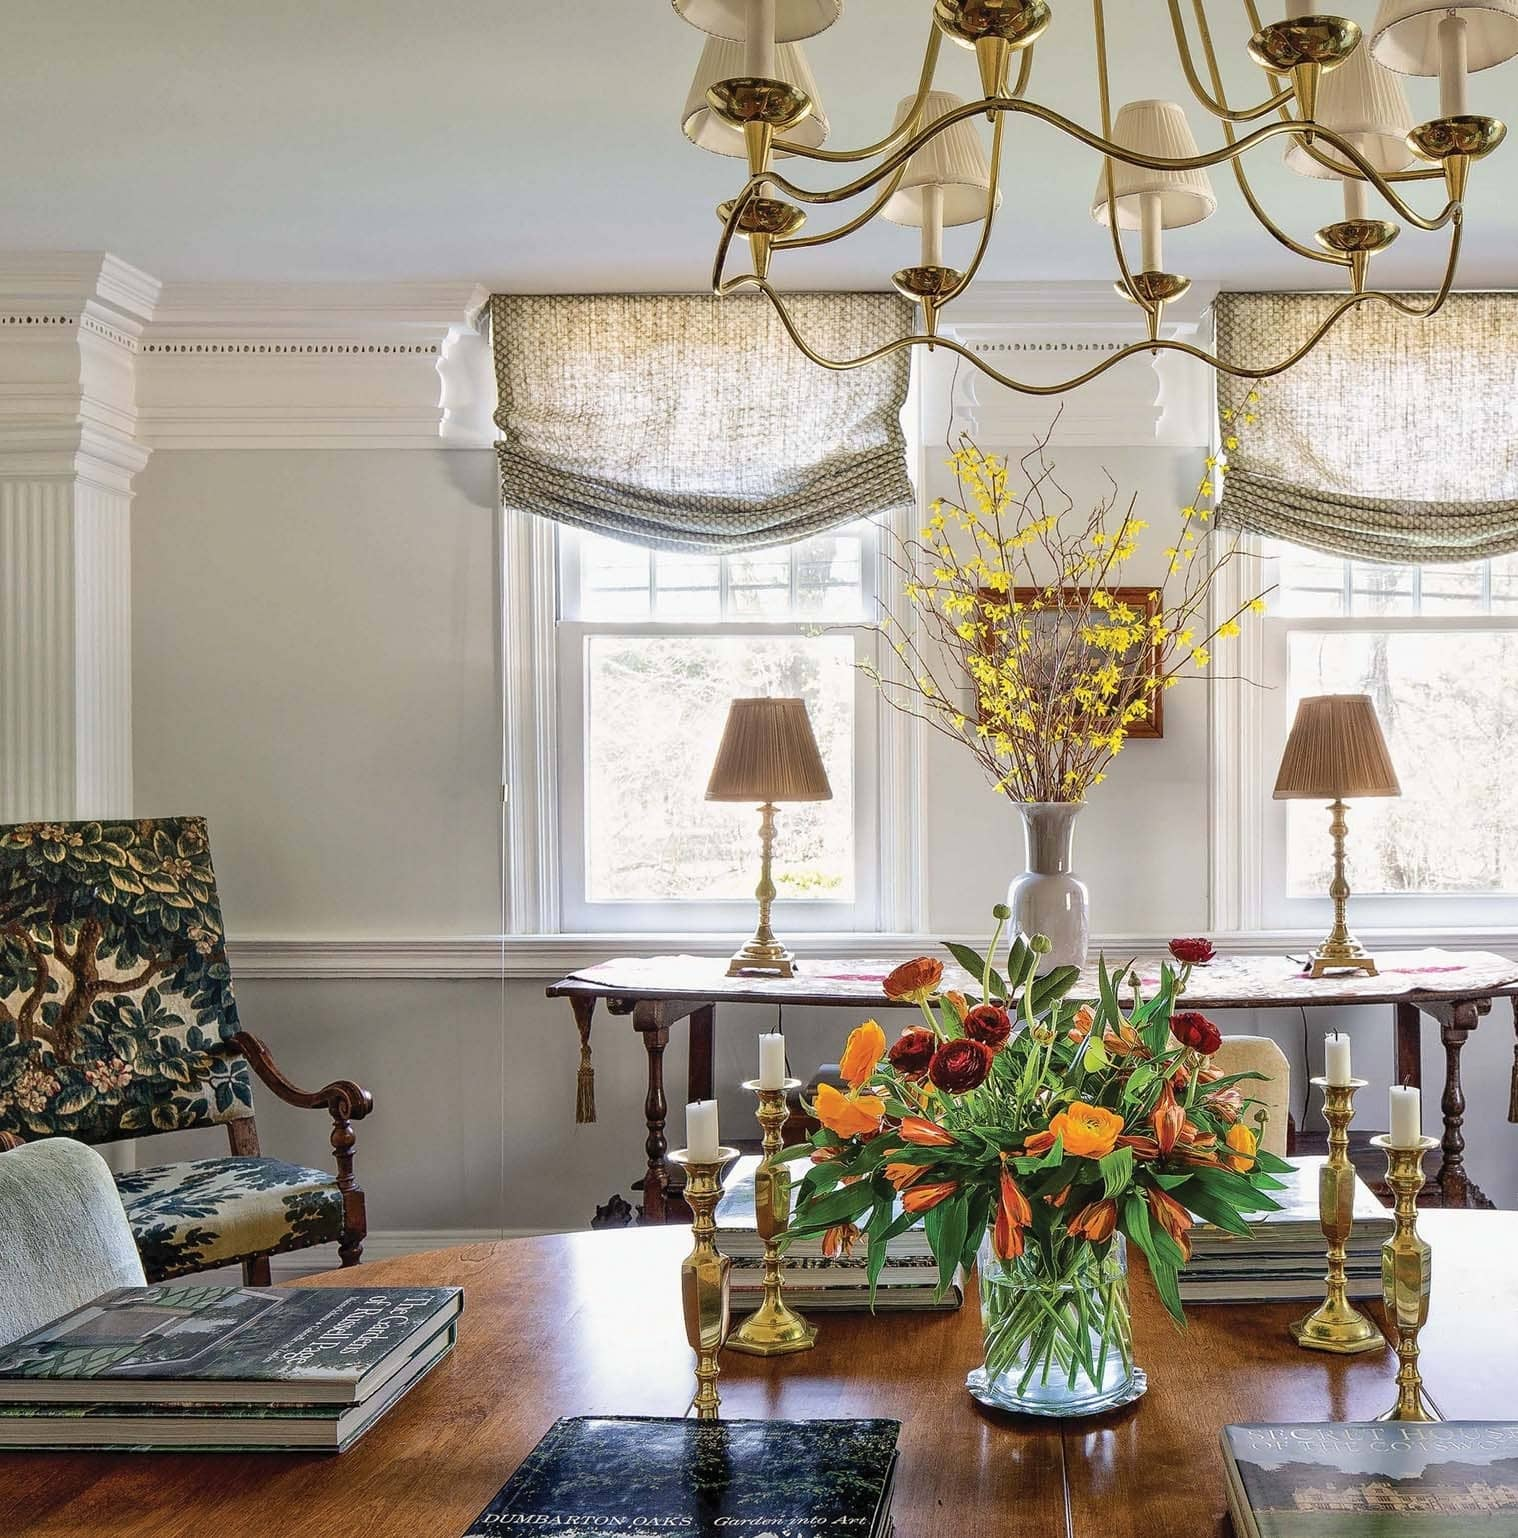 An Artful Approach FOR A 1755 COLONIAL